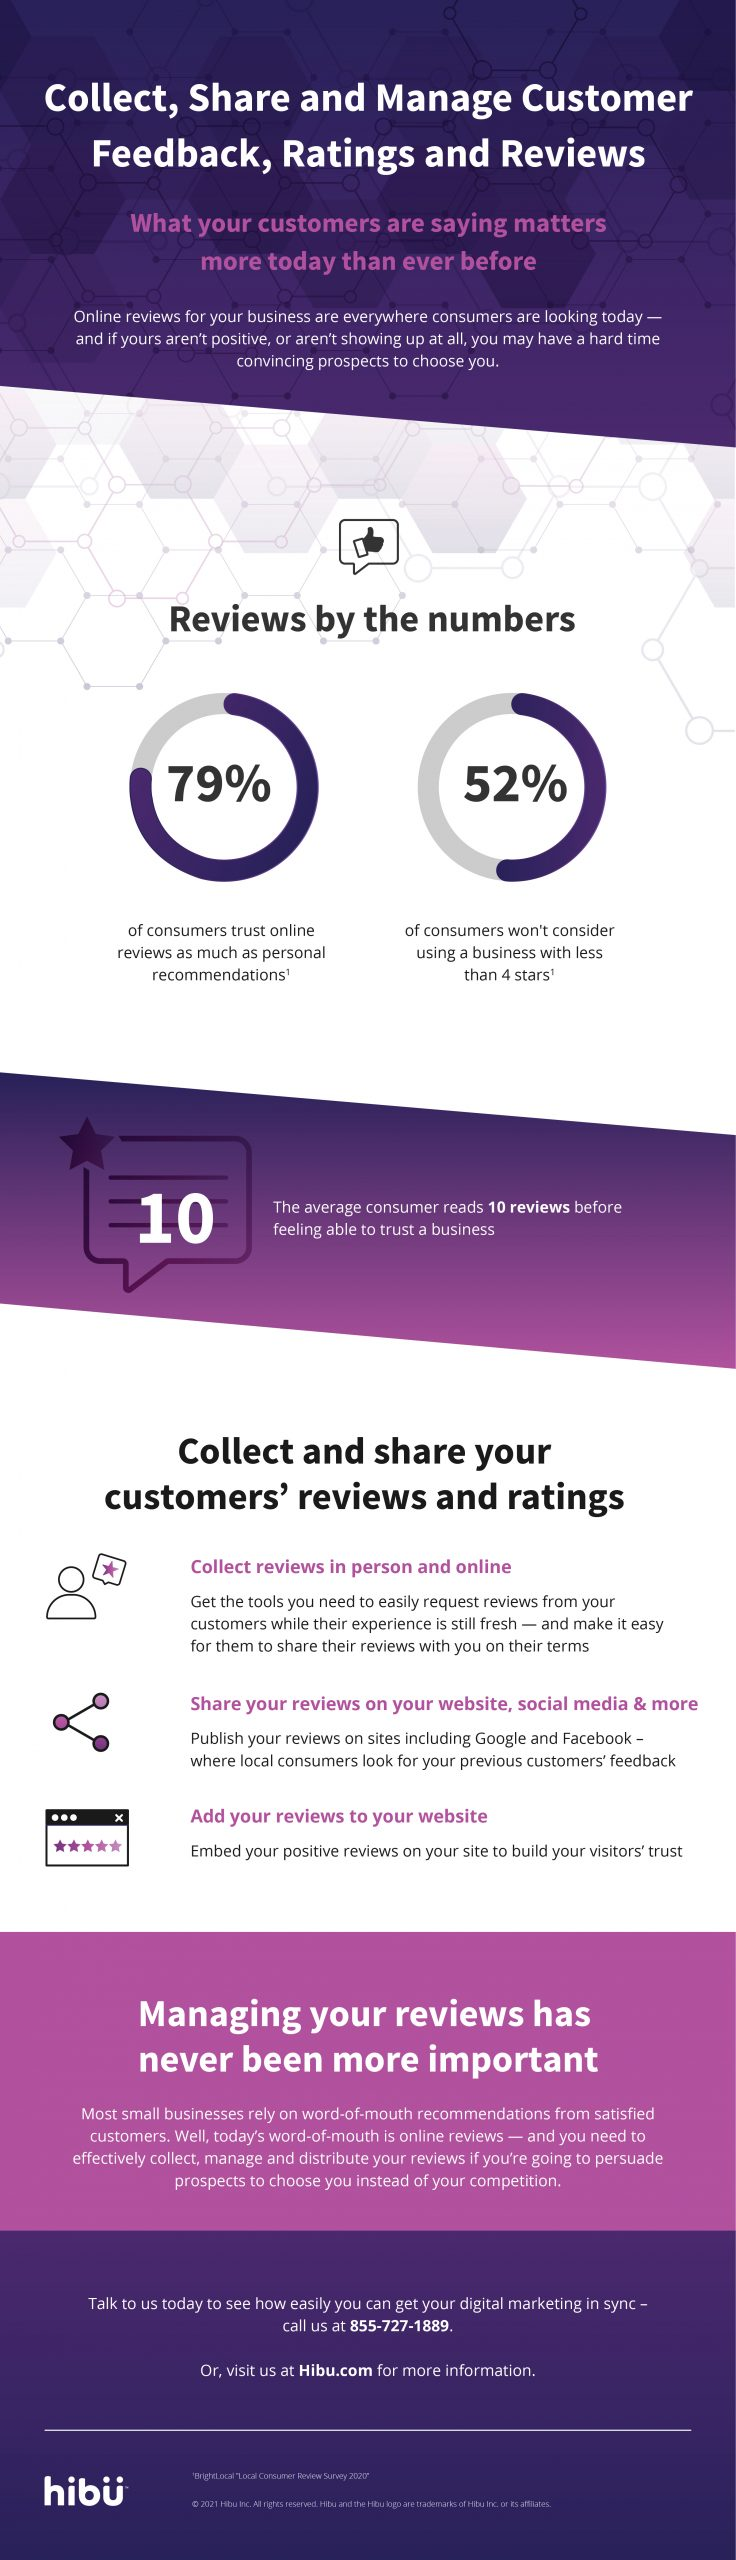 Hibu's infographic about online reviews for small businesses